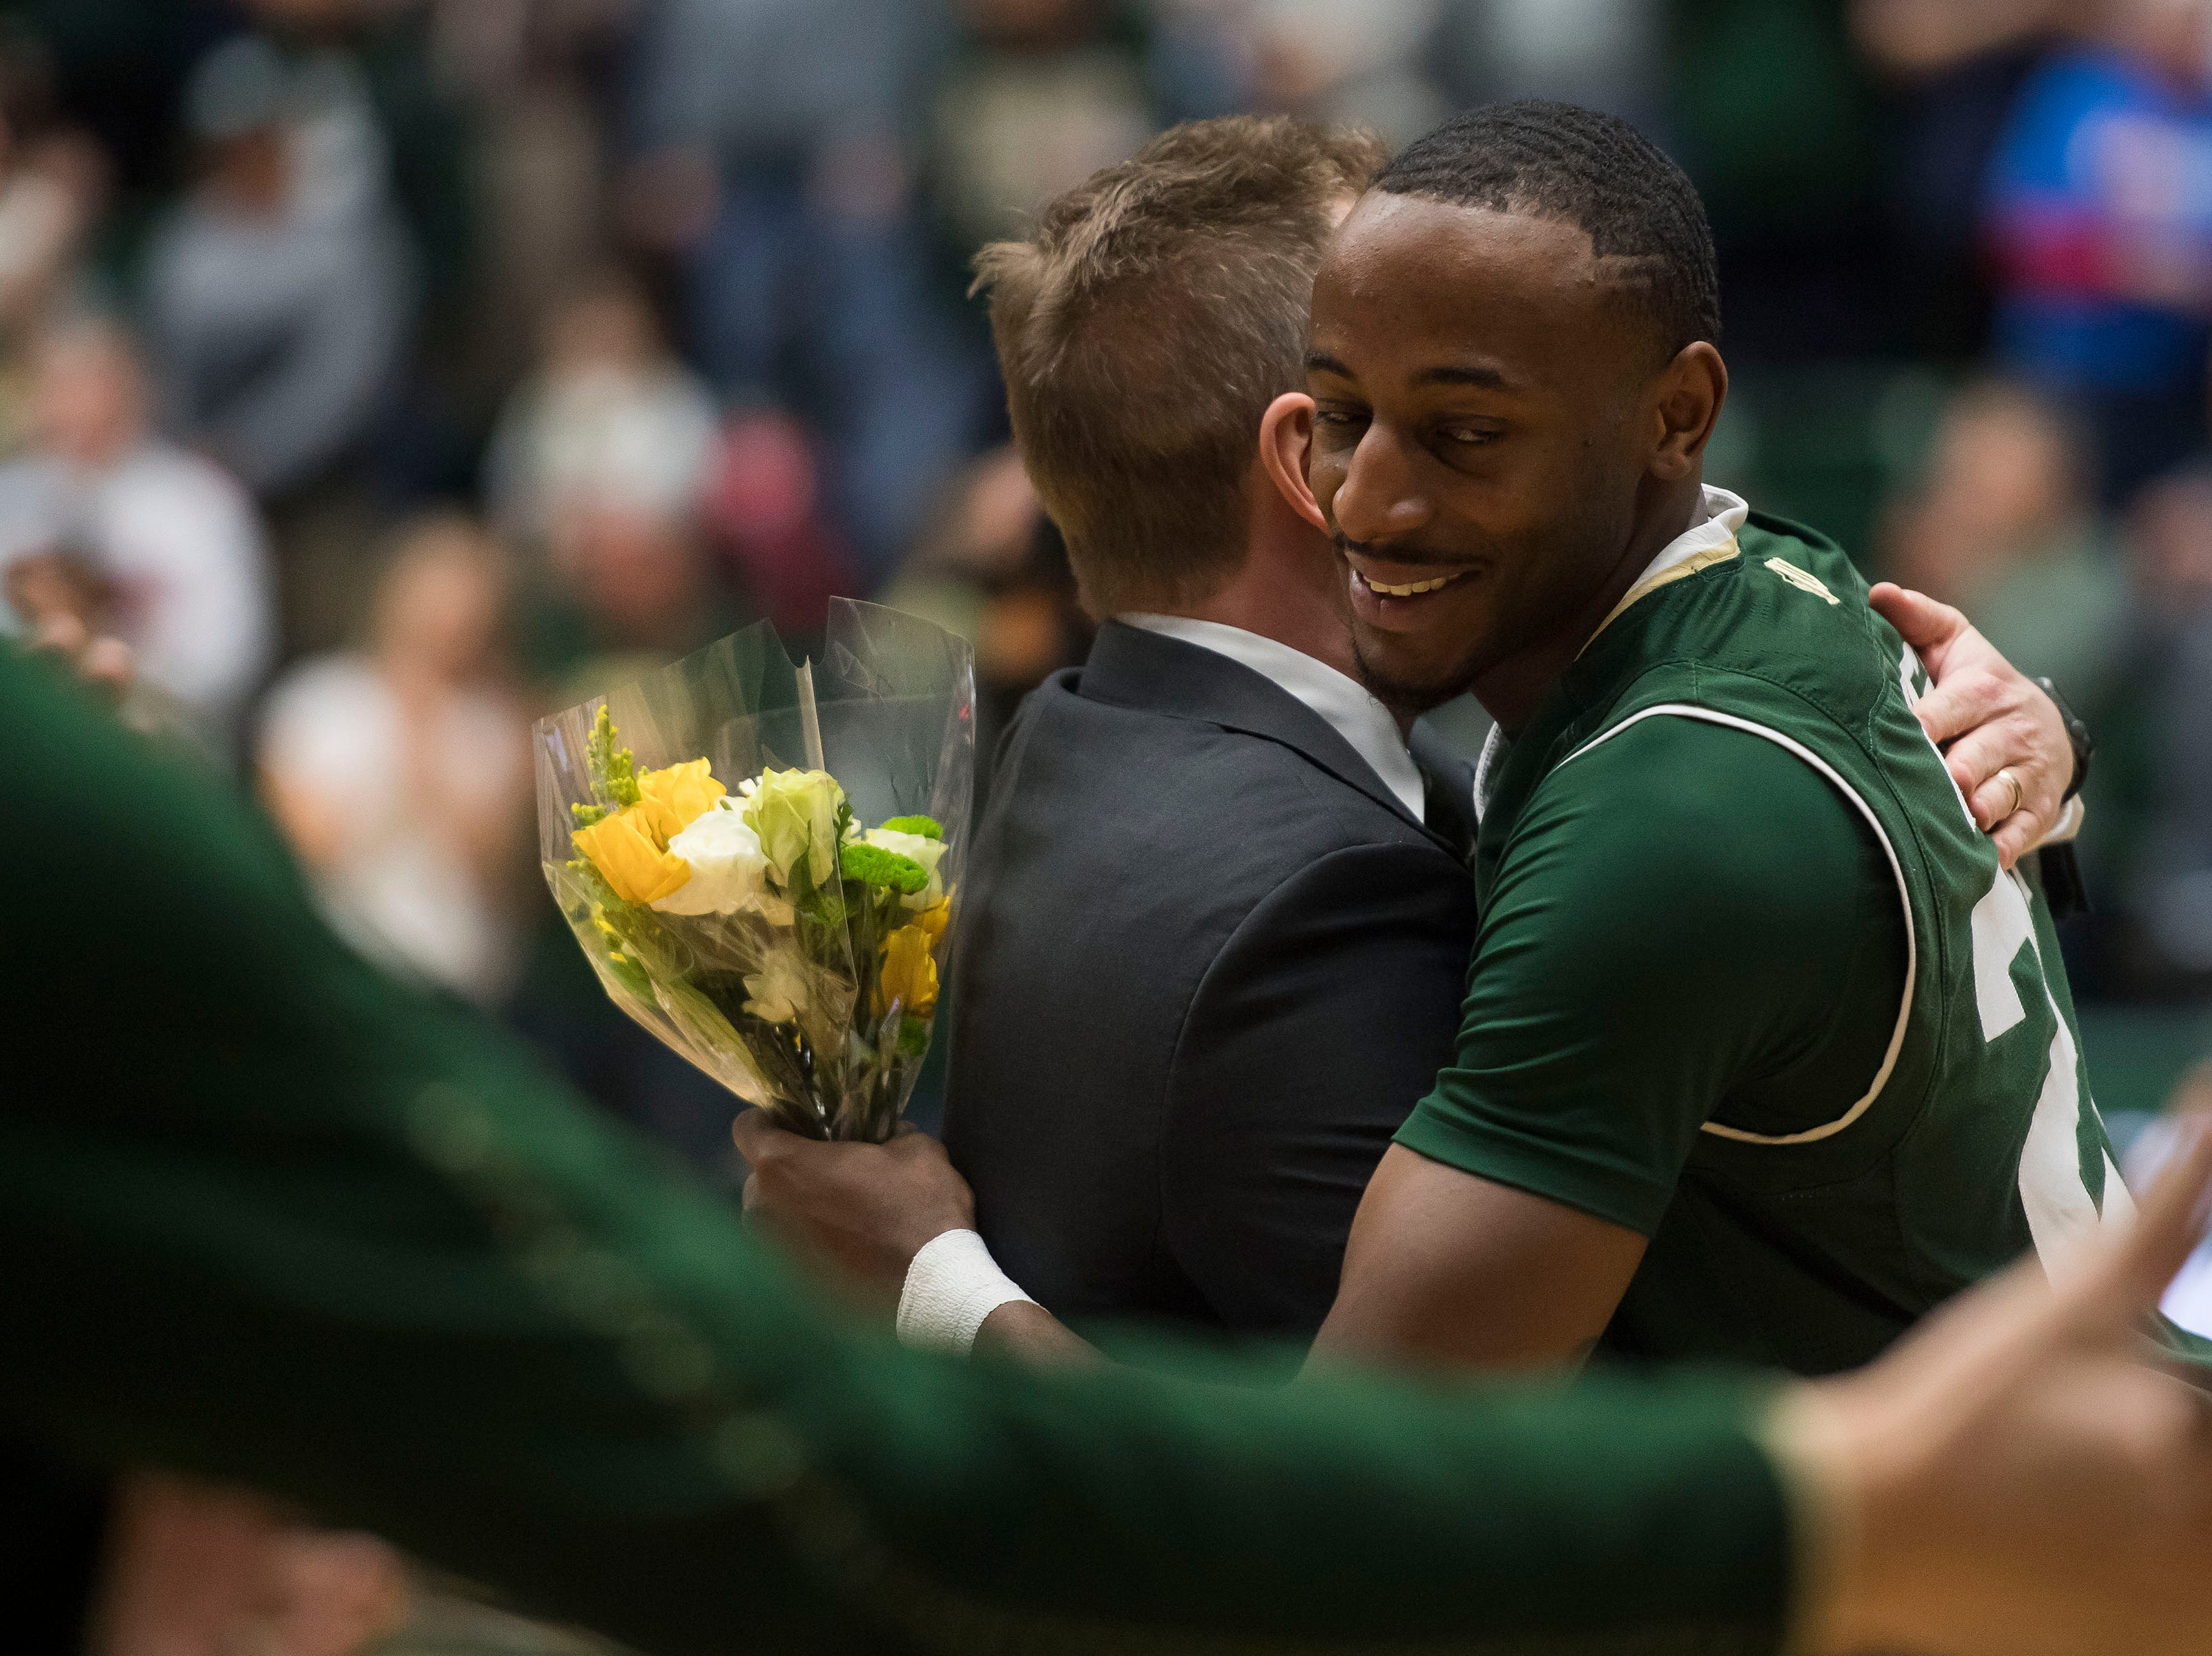 Colorado State University senior guar J.D. Paige hugs head coach Niko Medved while being honored before a game against University of Nevada, Las Vegas on Saturday, March 9, 2019, at Moby Arena in Fort Collins, Colo.